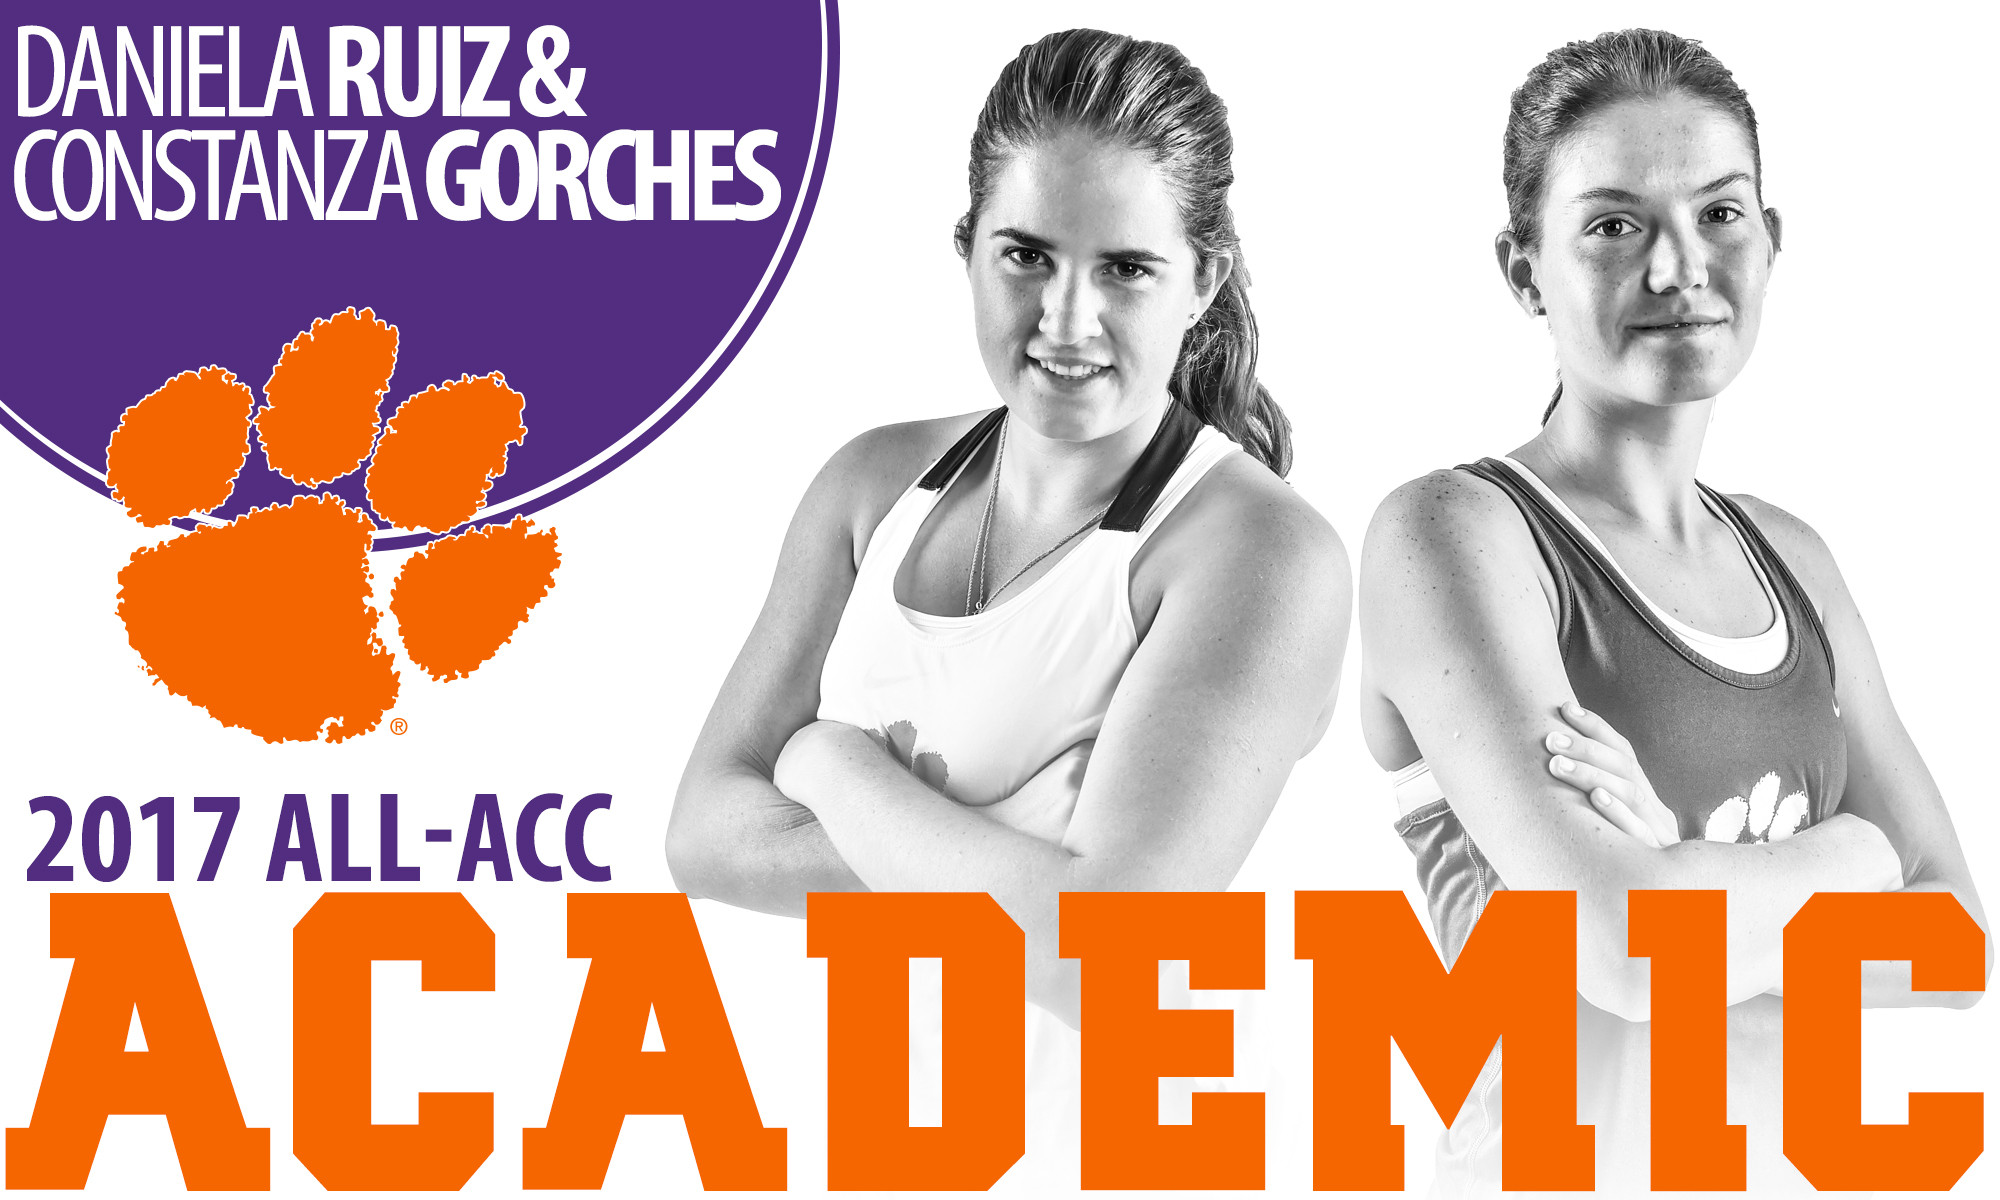 Gorches & Ruiz Named to 2017 All-ACC Academic Team